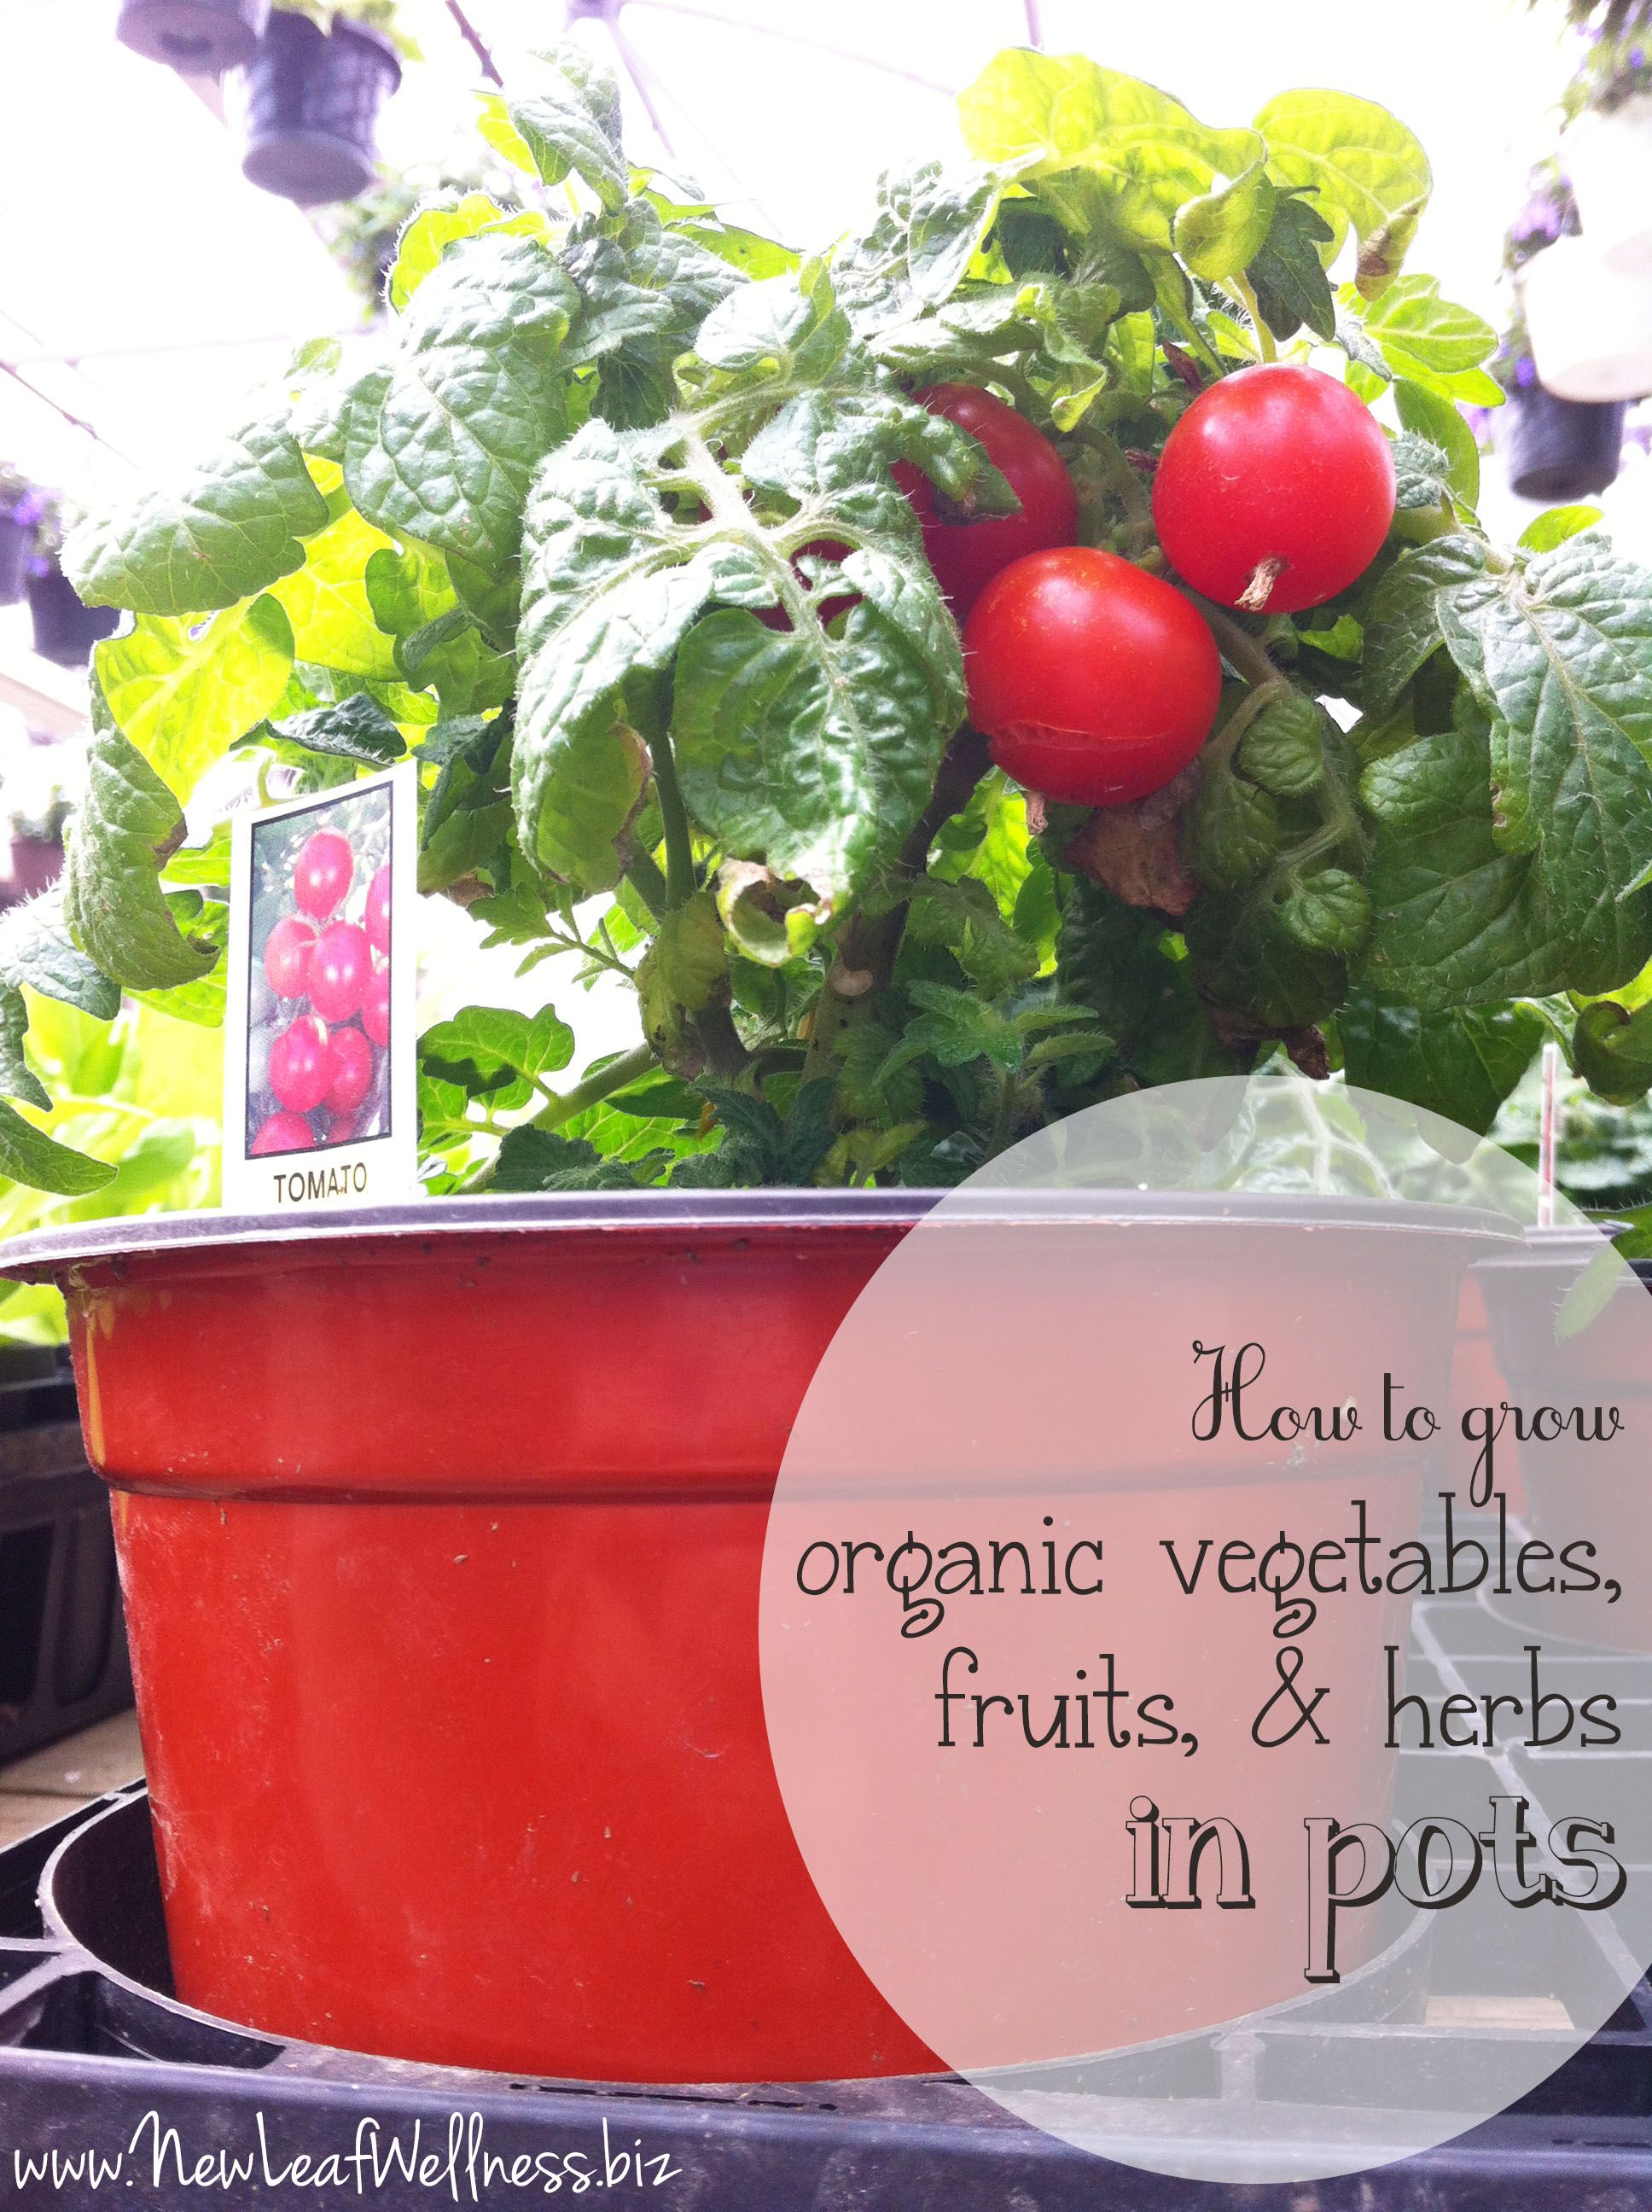 How To Grow Organic Vegetables, Fruits, U0026 Herbs In Pots On Your Deck.  Awesome Info From @Megan Margraff Greenhouse!